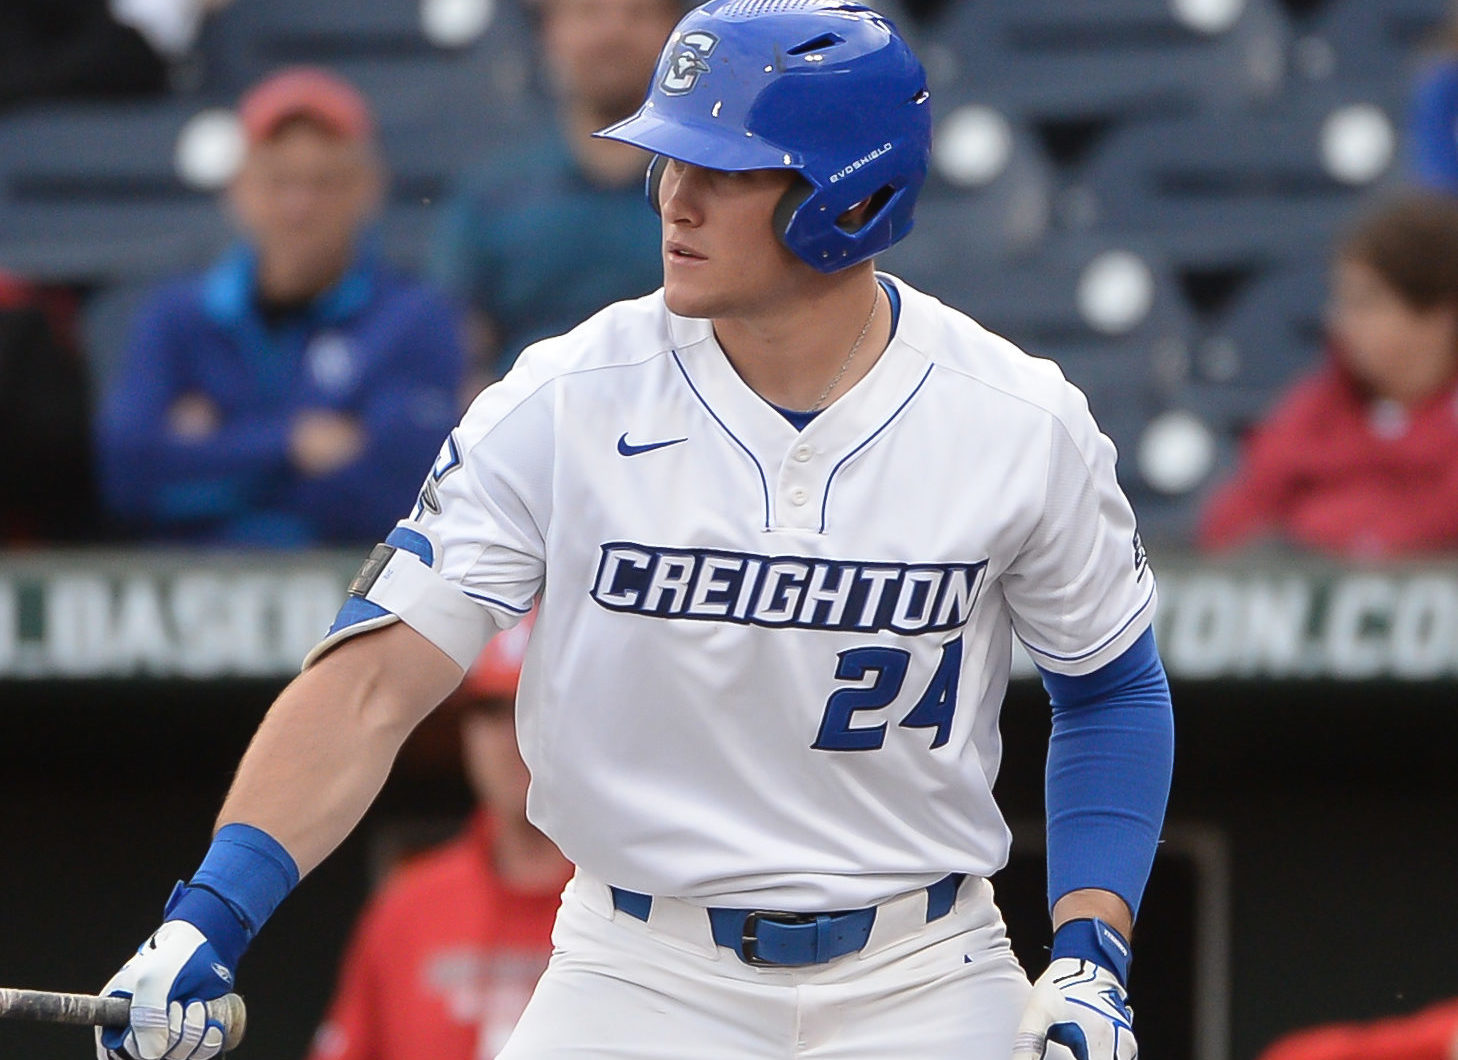 premium selection 2339d 7acd2 Will Robertson key to Creighton's success - The 3rd Man In ...